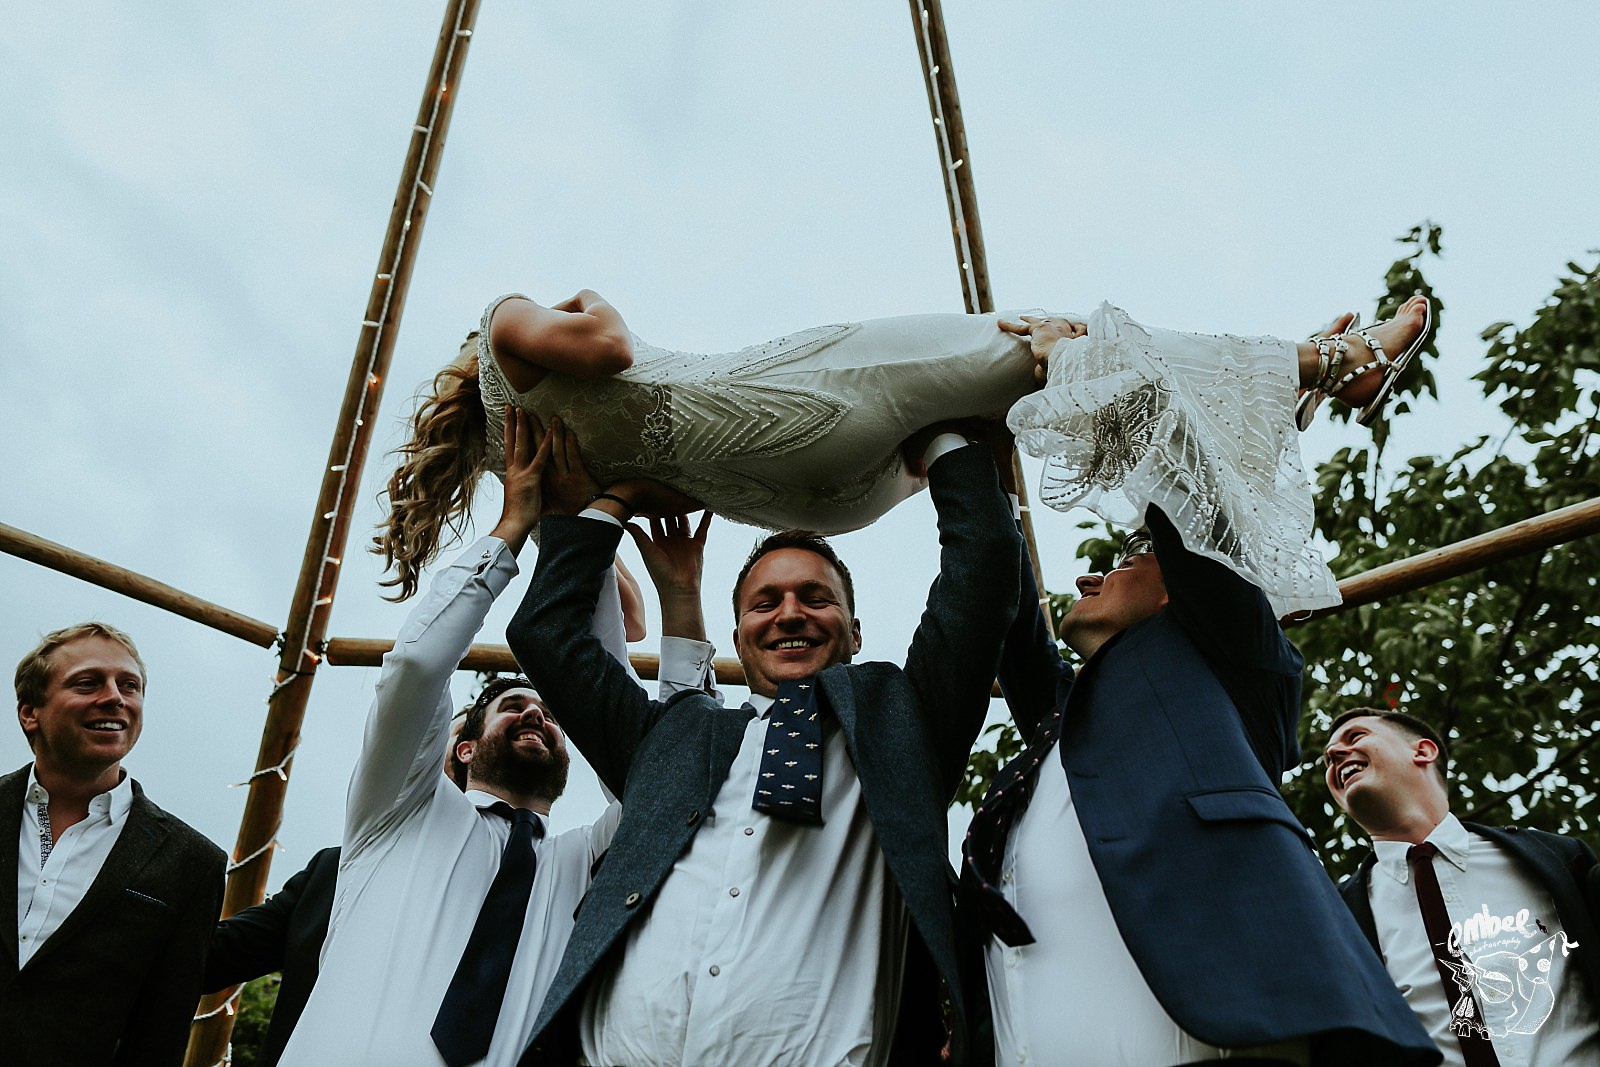 groomsman lifts the bride above his head